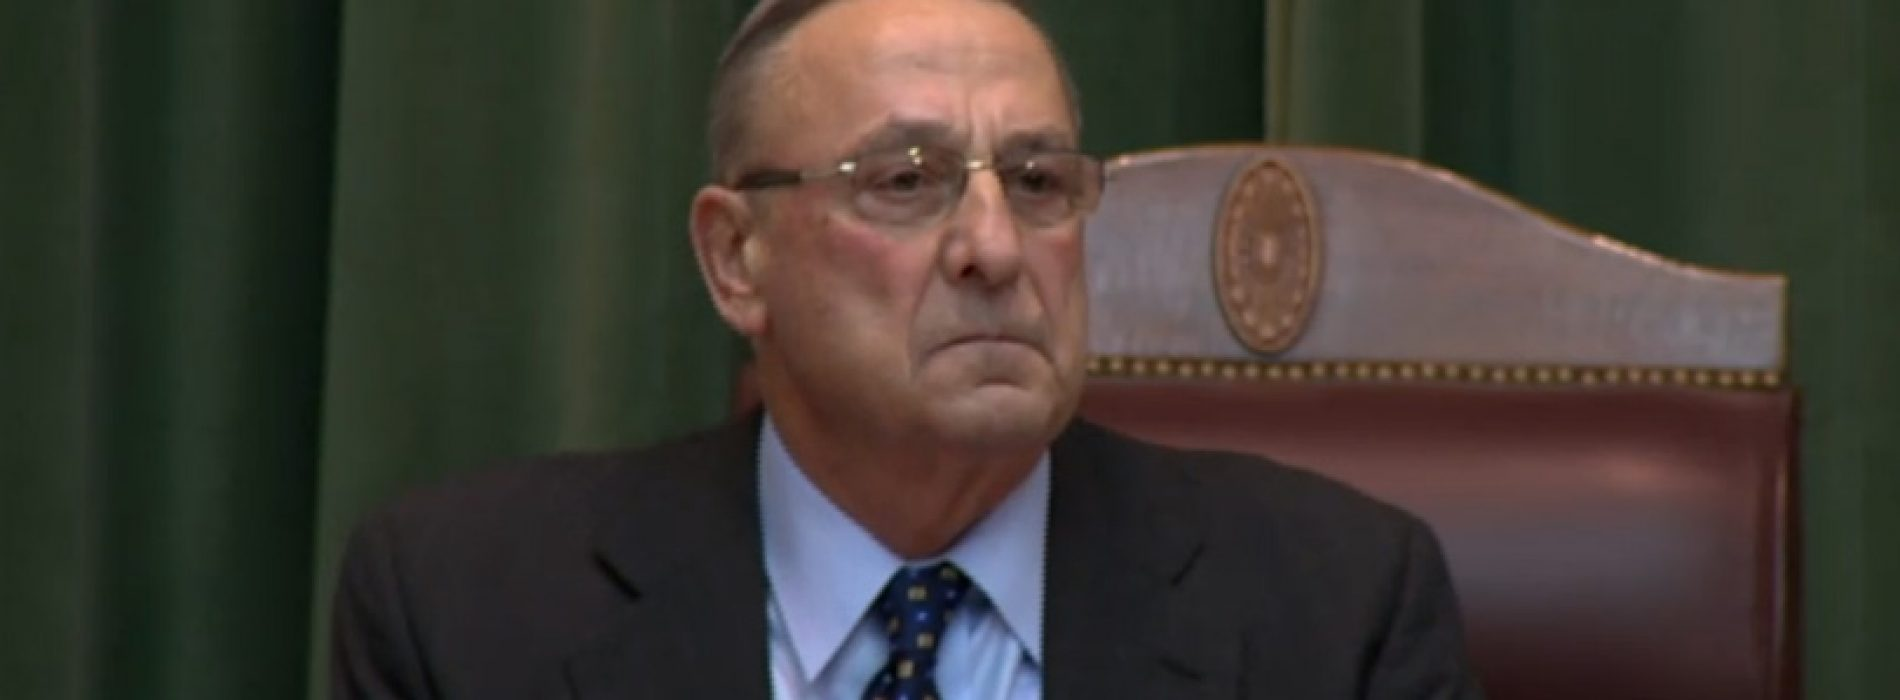 School funding in limbo as Gov. LePage refuses to implement Question 2